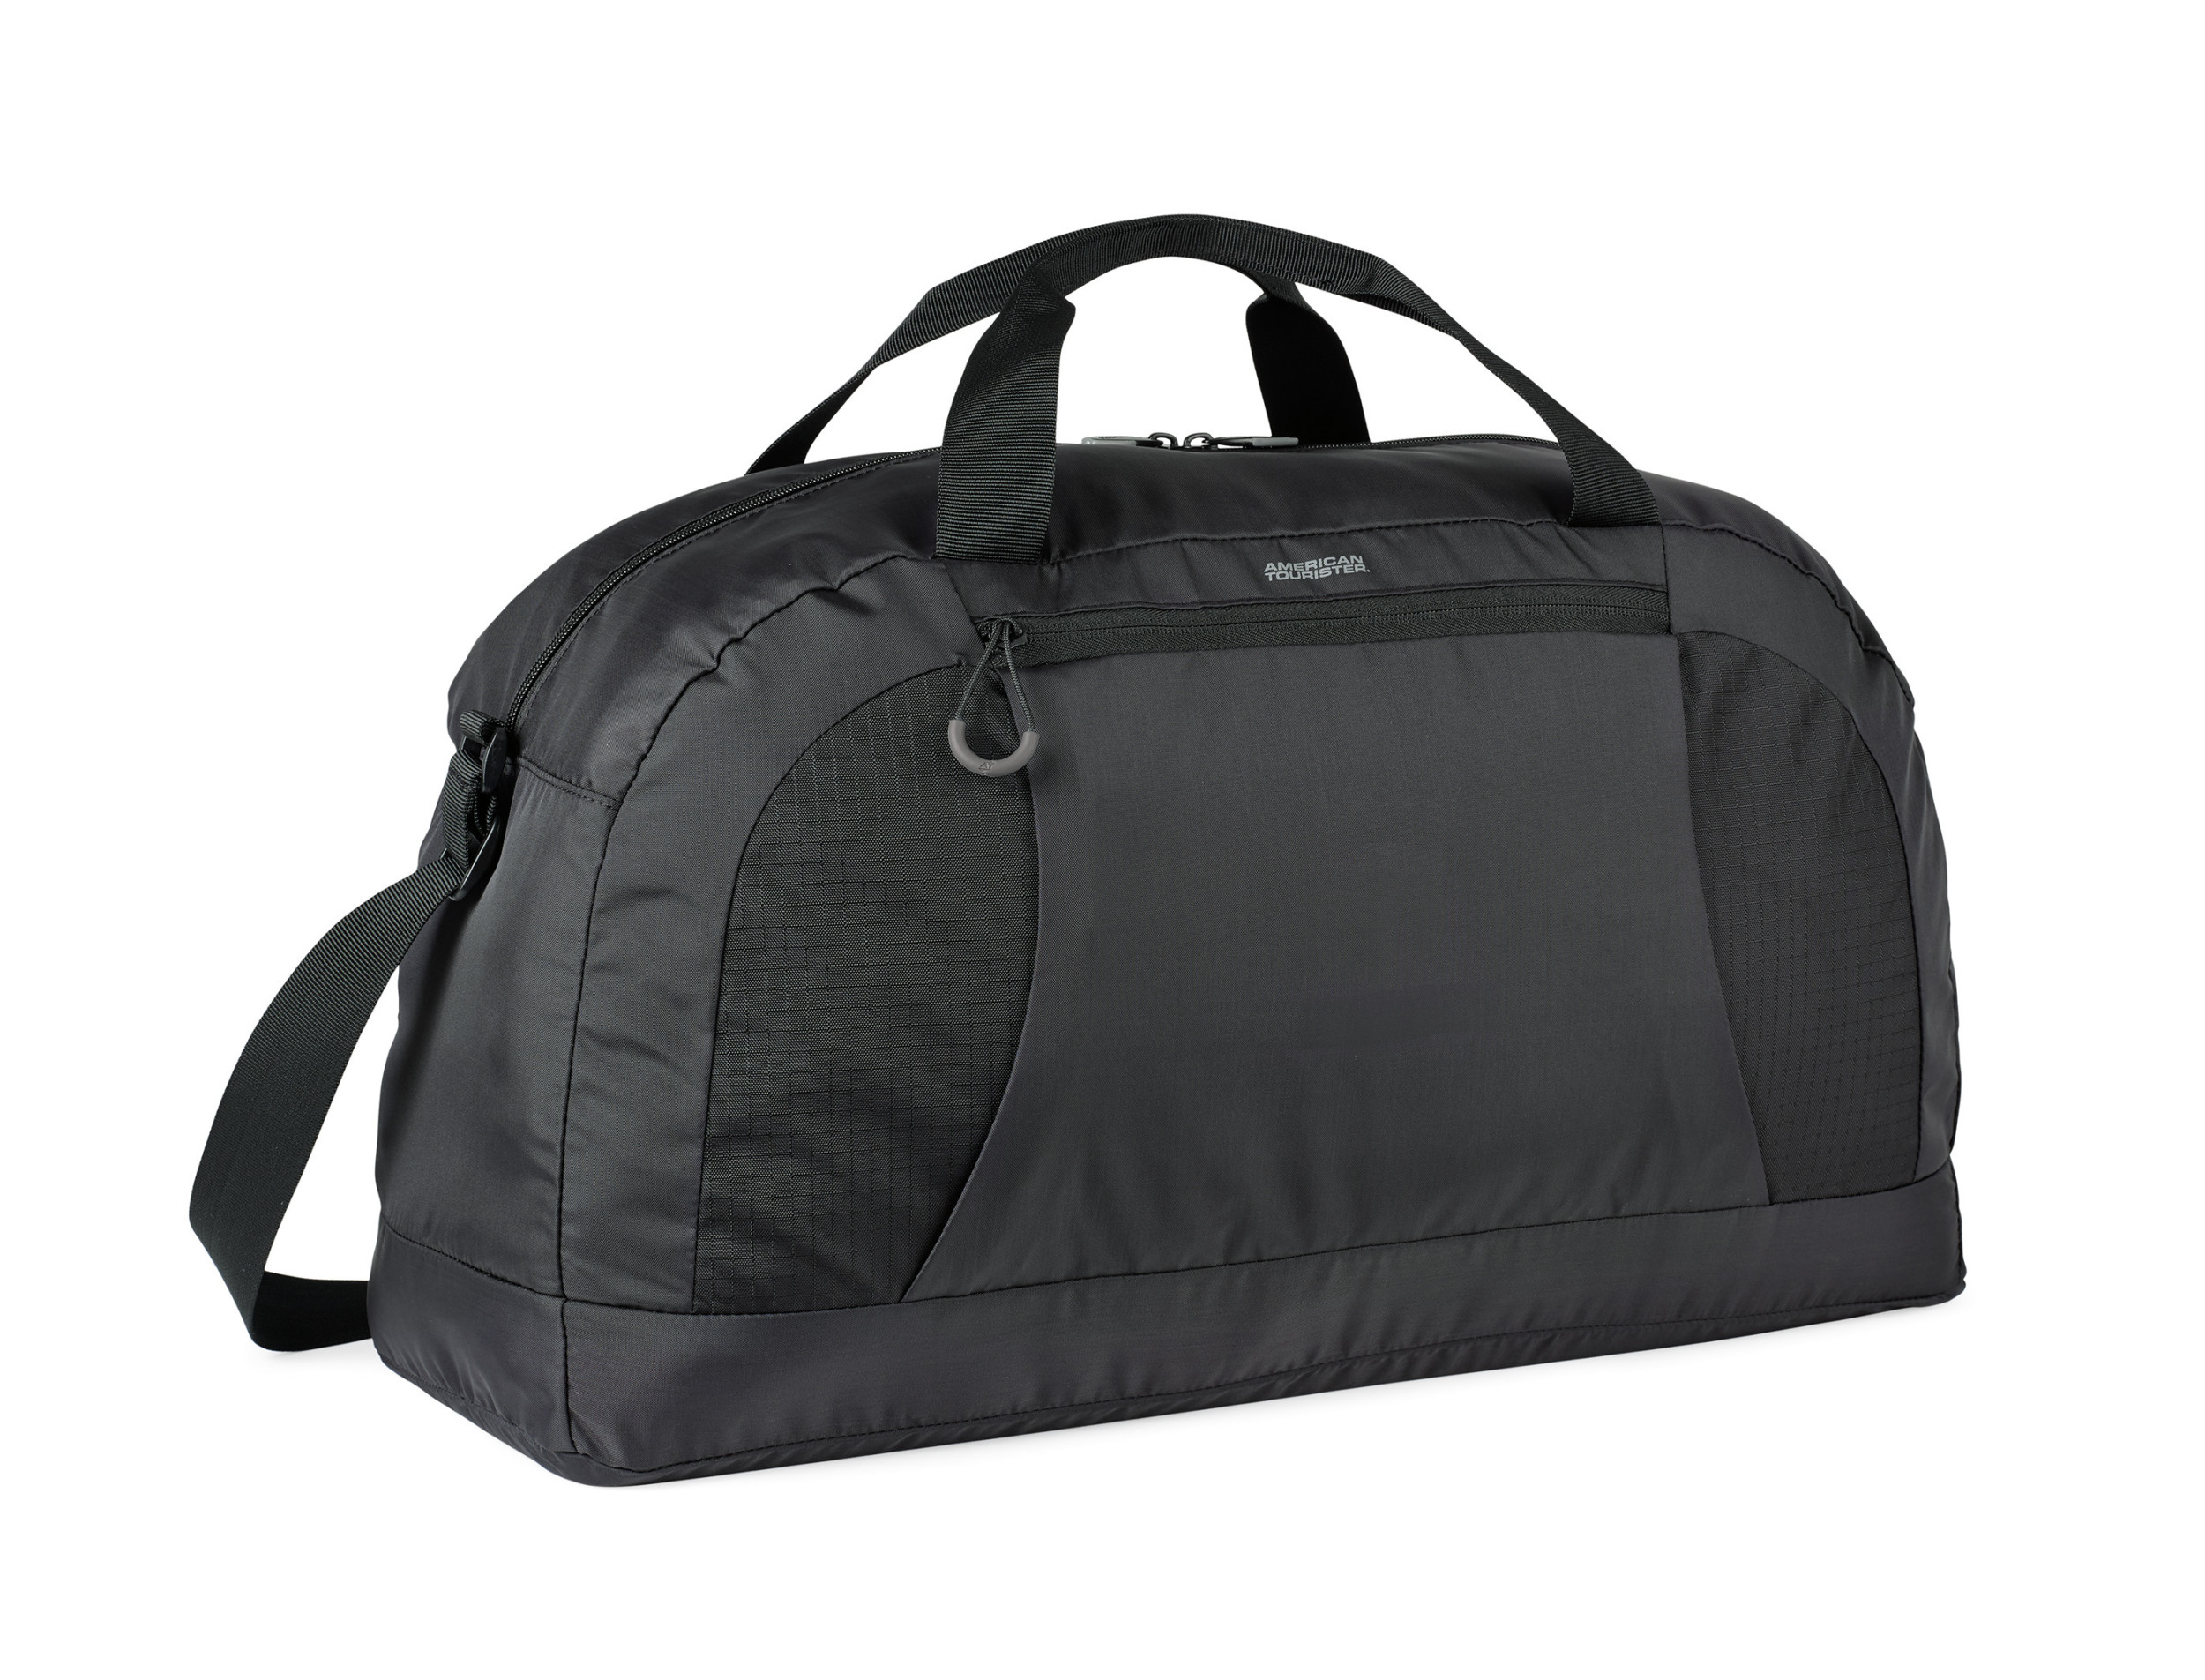 American Tourister 96028 - Voyager Packable Duffel